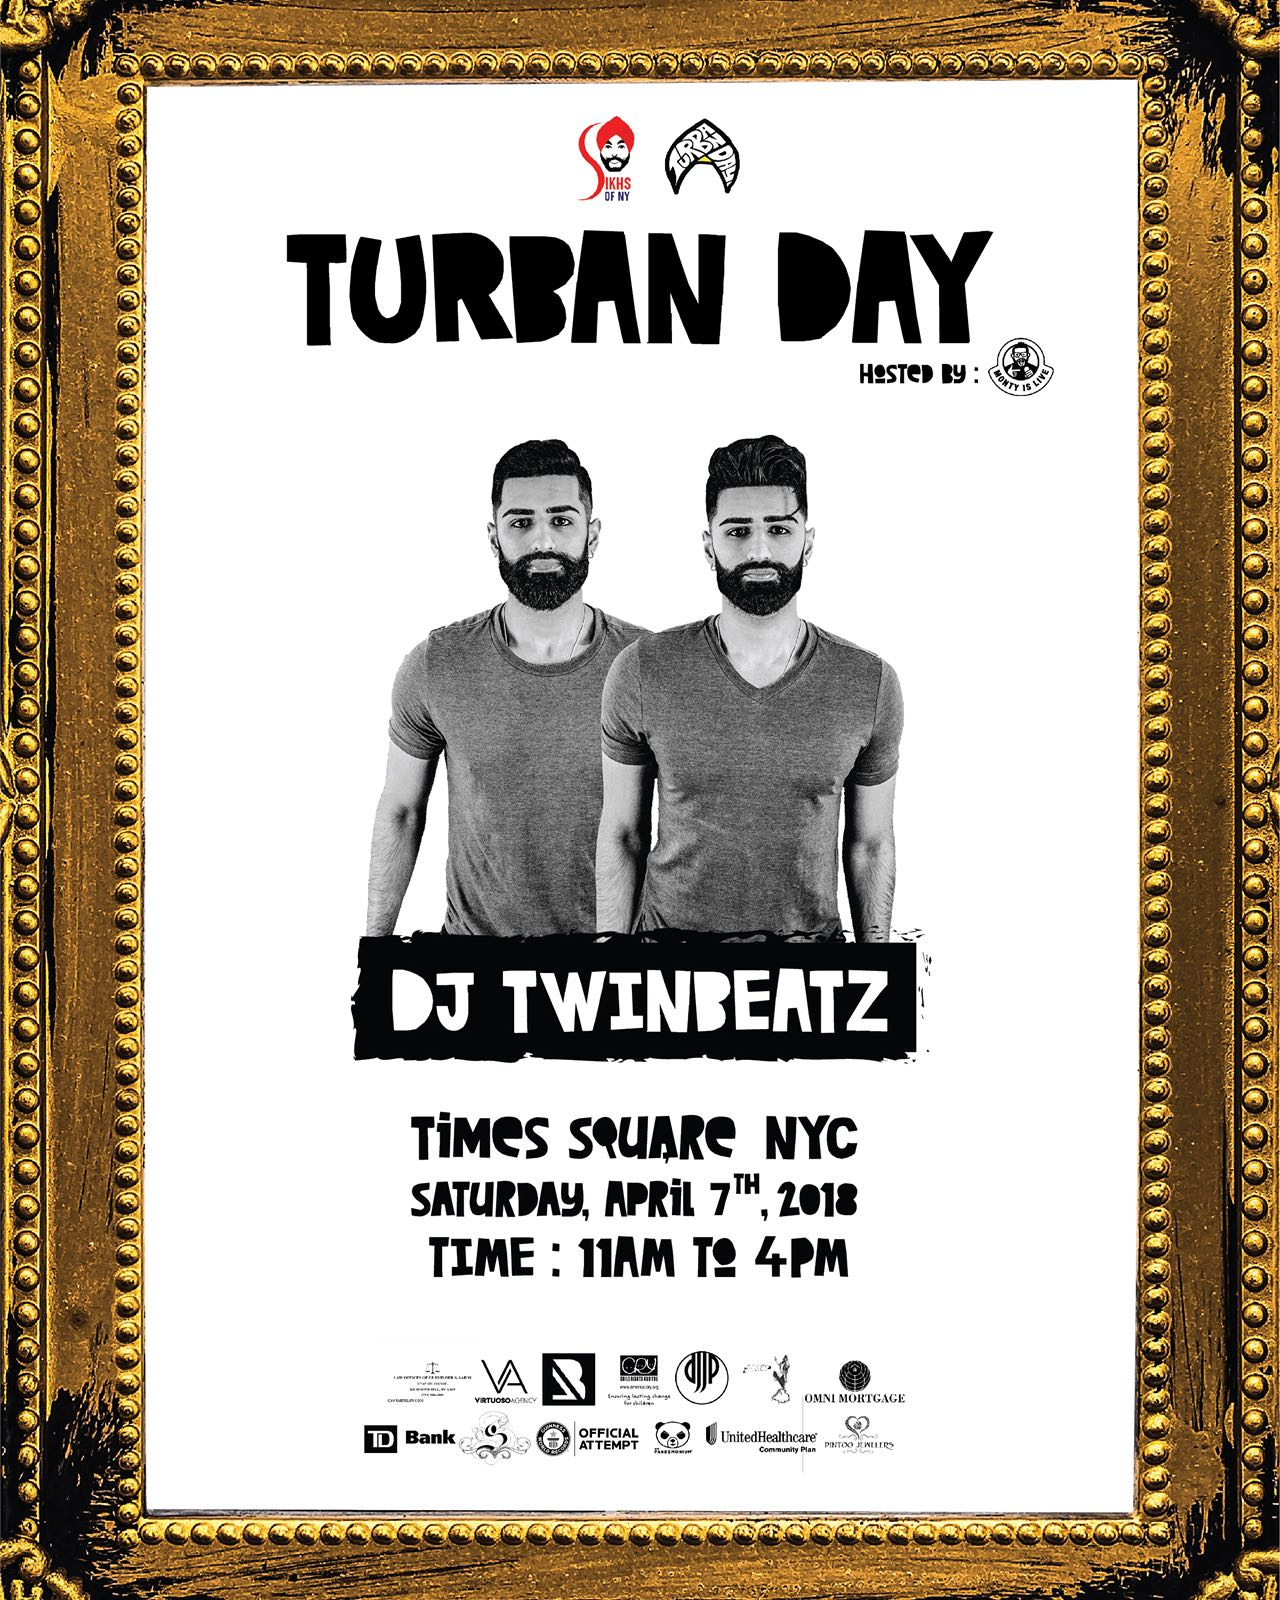 Turban Day at NYC